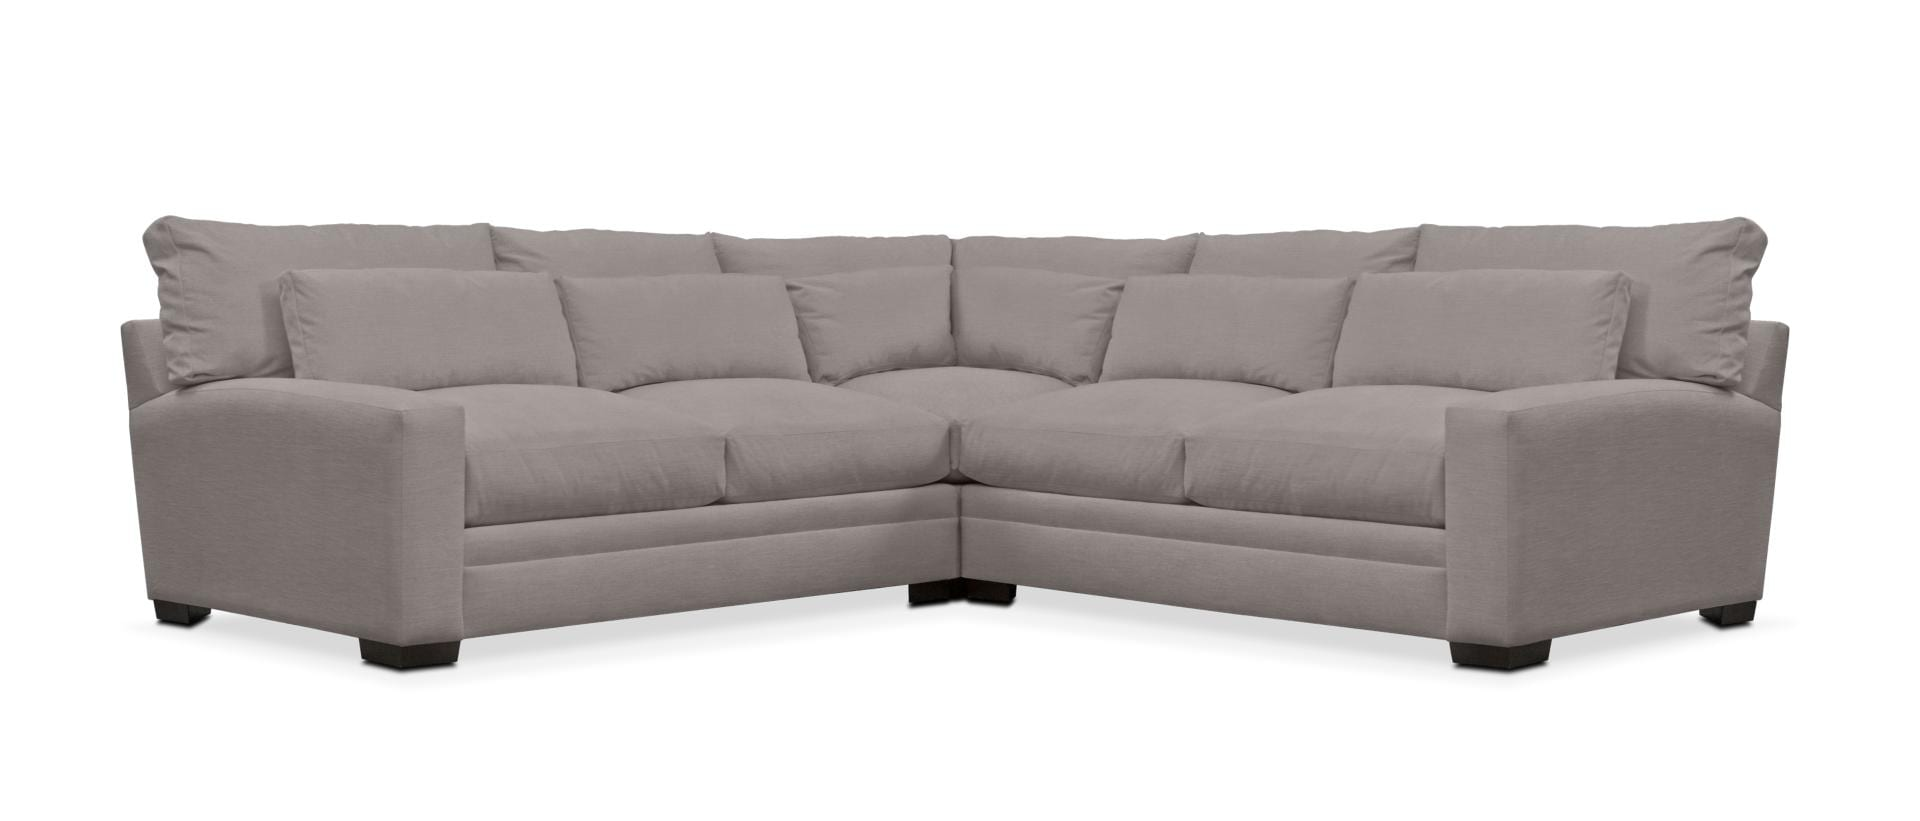 Swell Winston 3 Piece Sectional Dailytribune Chair Design For Home Dailytribuneorg